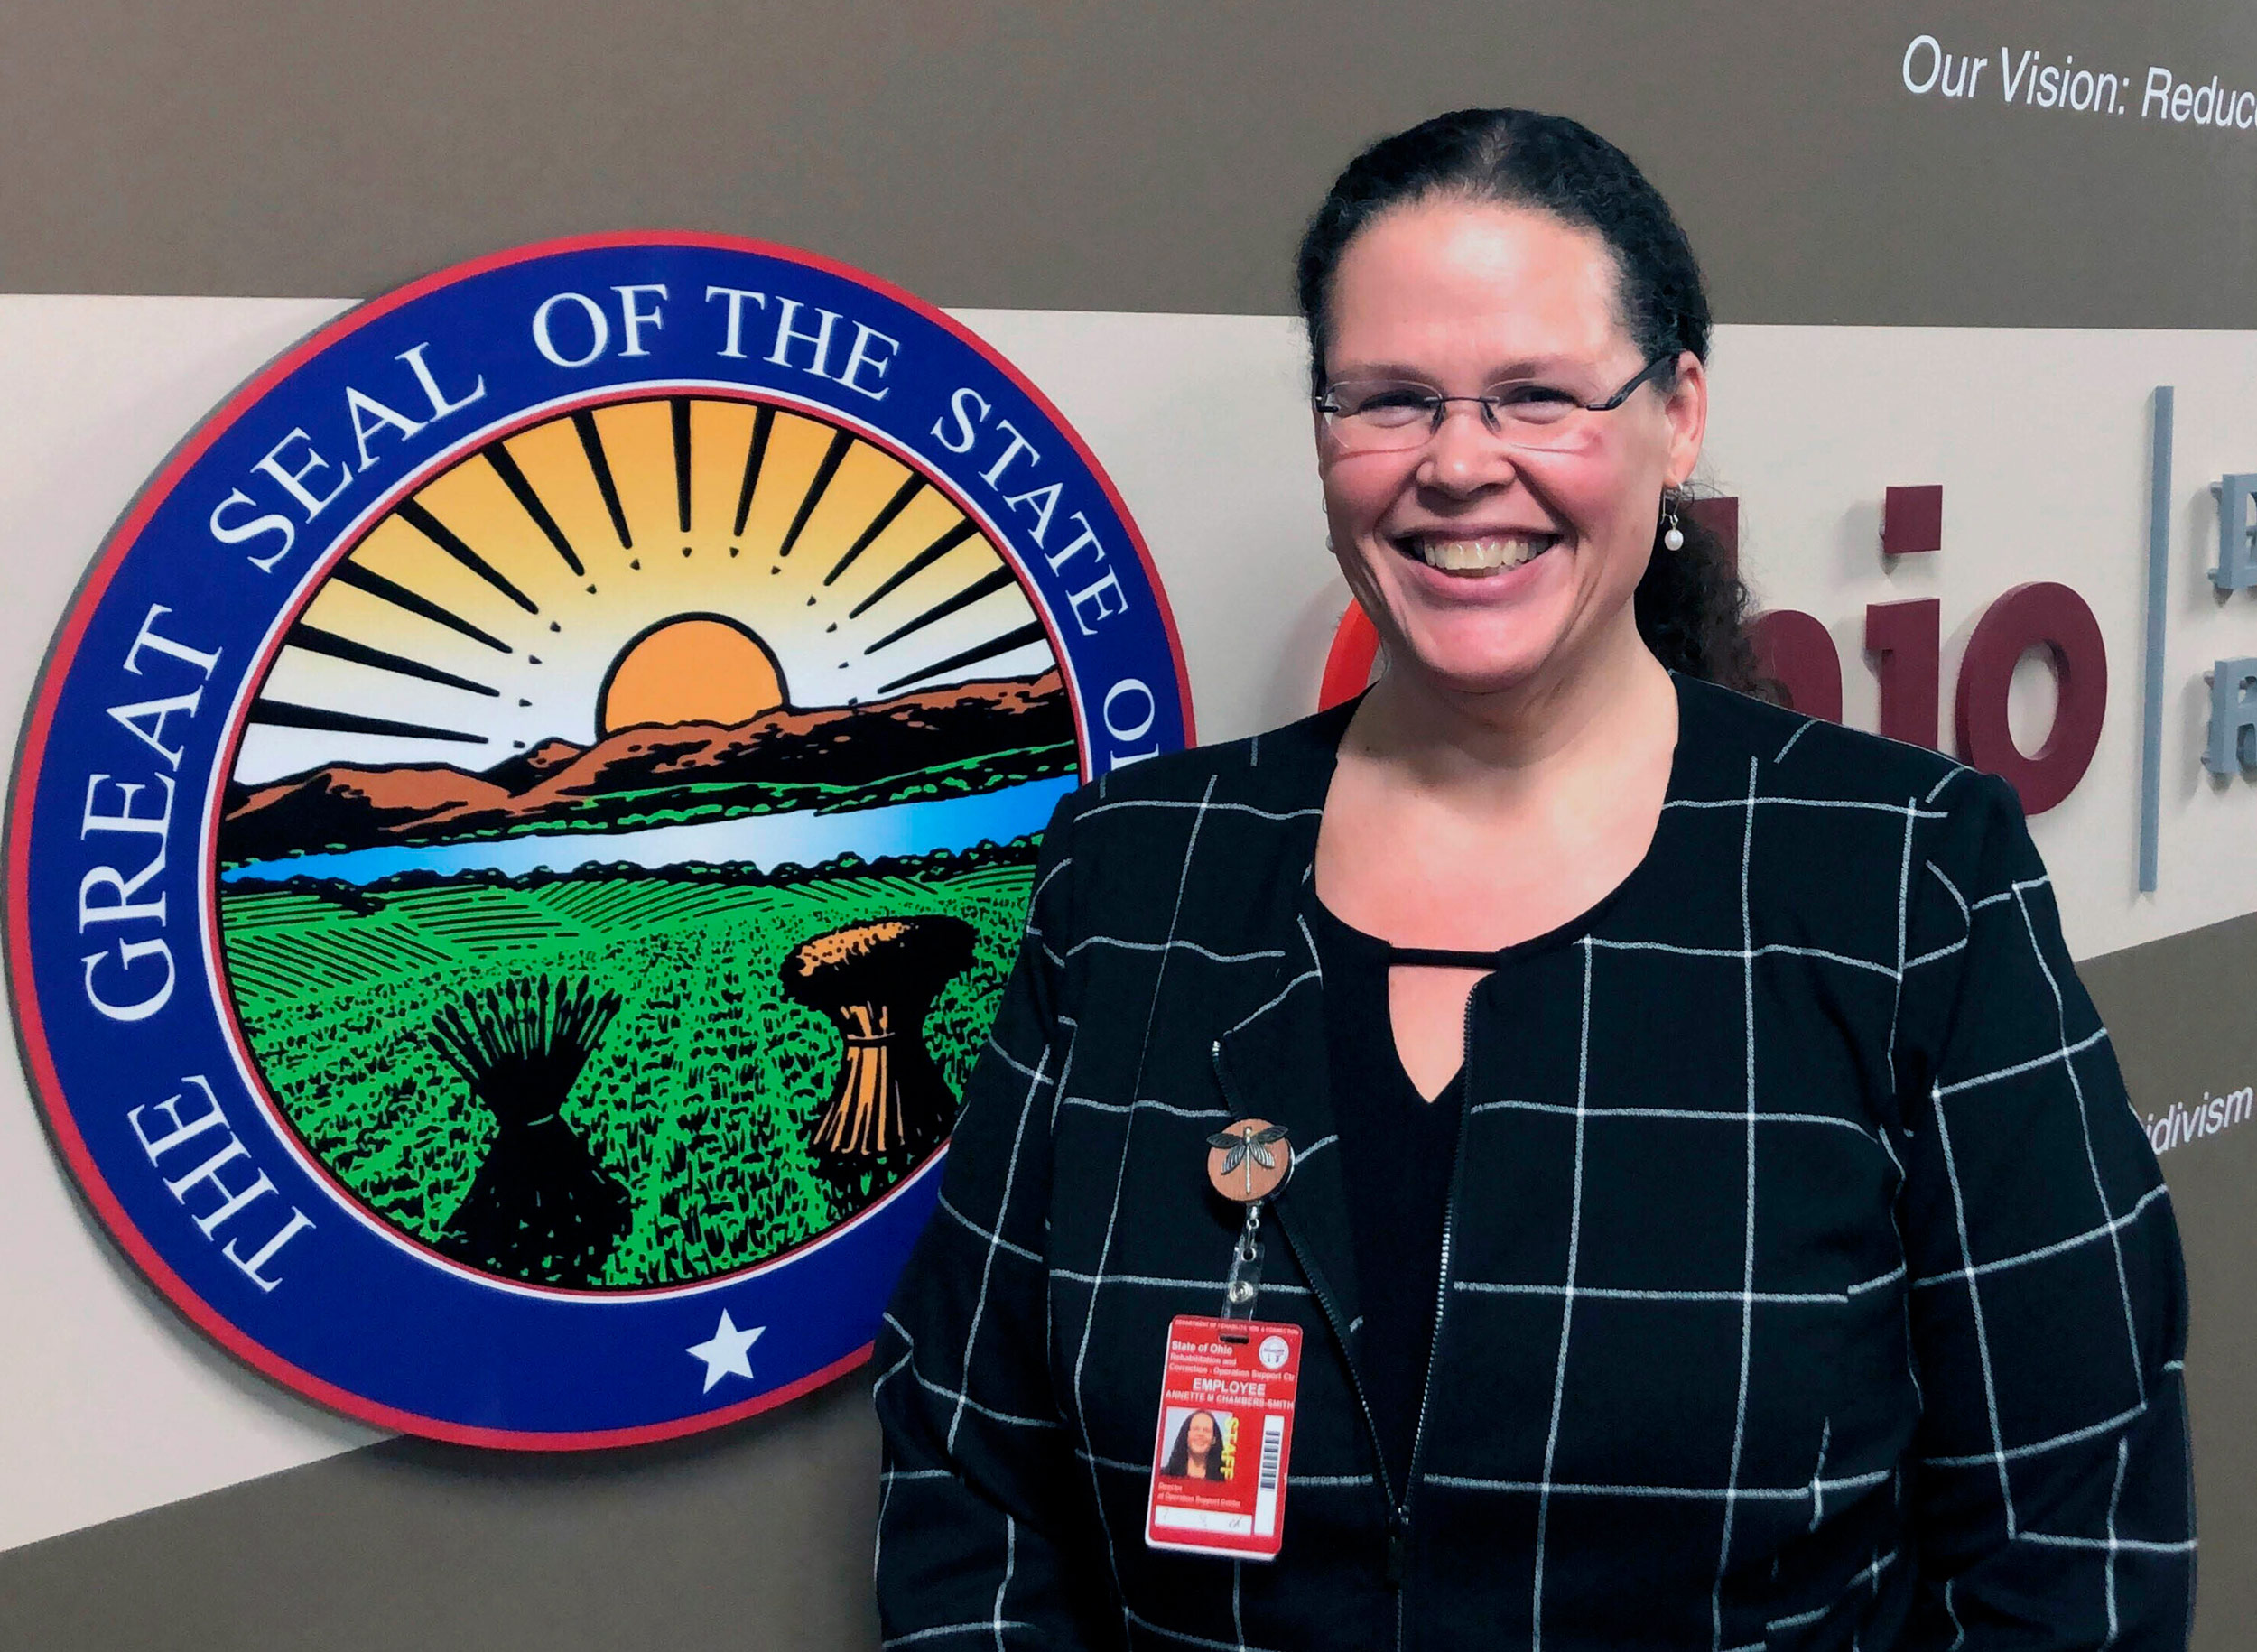 Annette Chambers-Smith, director of the Ohio Department of Rehabilitation and Correction, poses outside her office in Columbus, Ohio, on January 22.